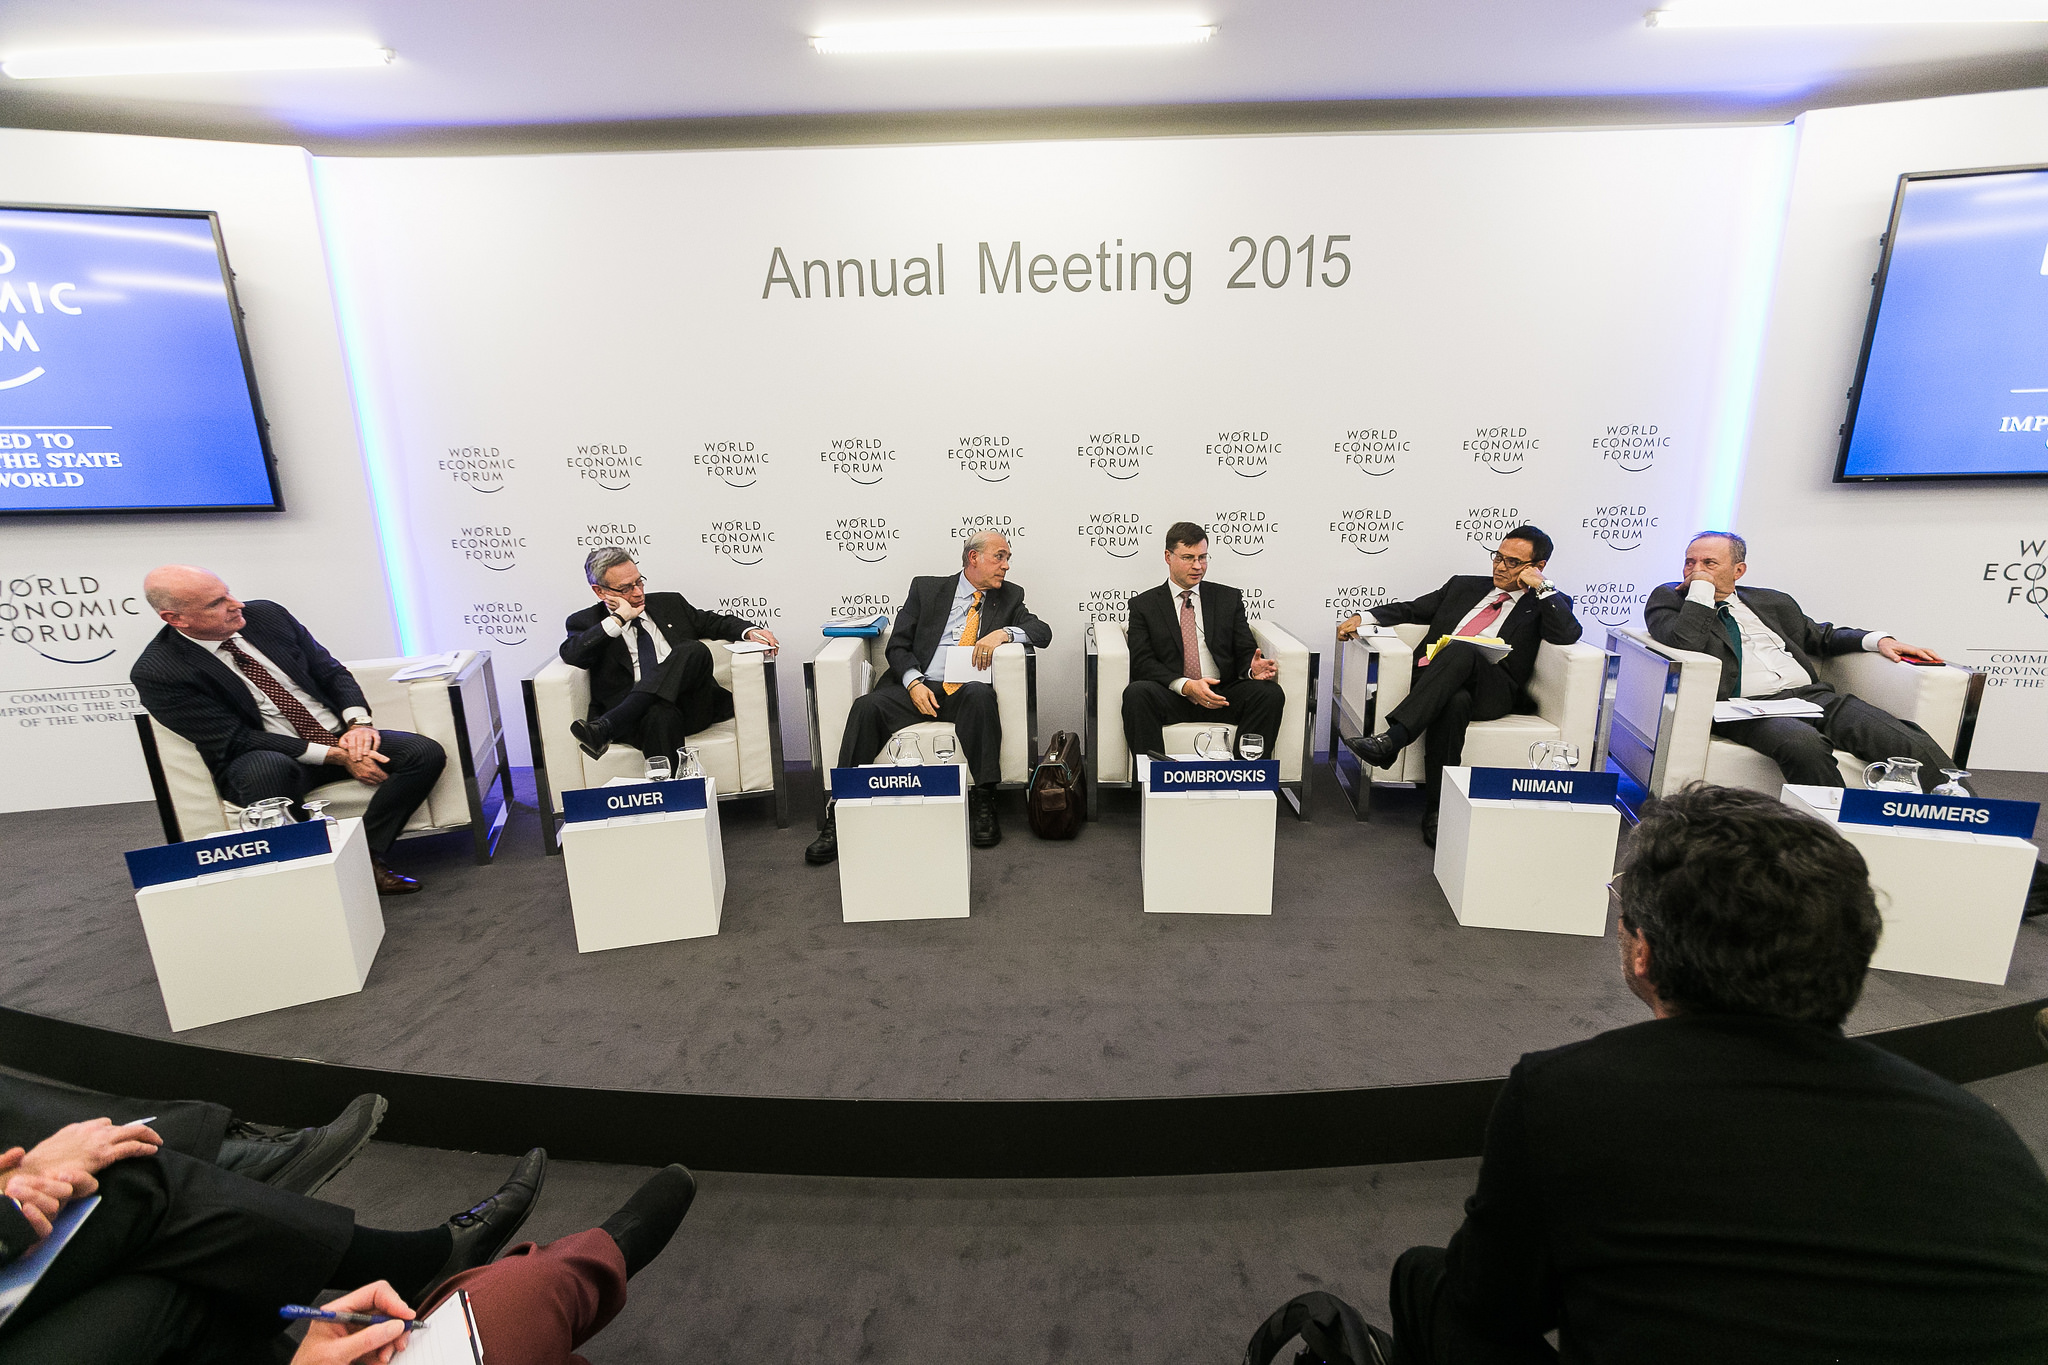 Annual Meeting 2015 of the World Economic Forum in Davos, Switzerland